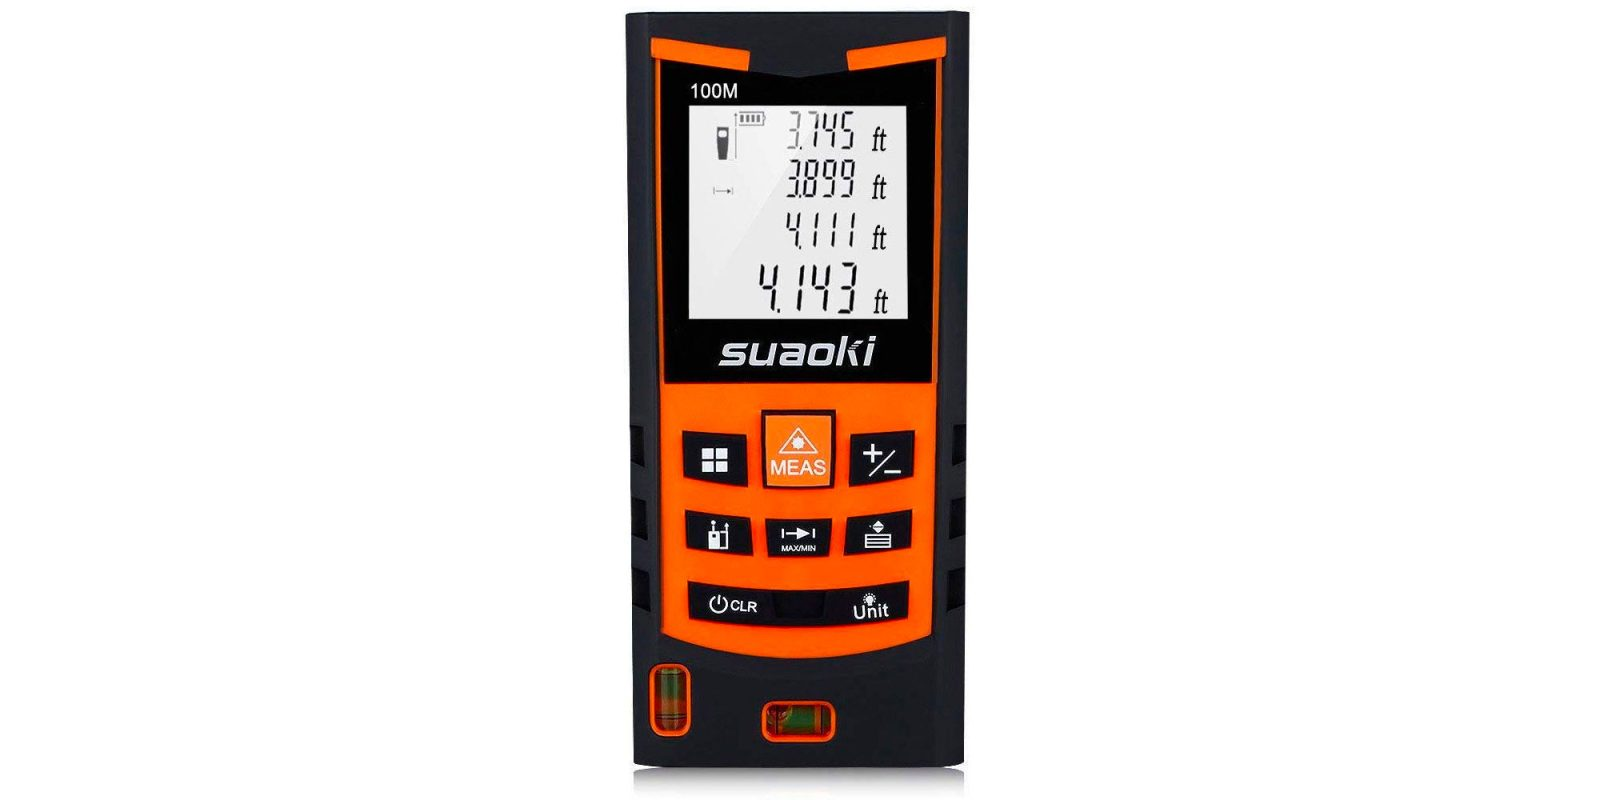 Finish your DIY project with this 330-foot laser distance measure at $29.50